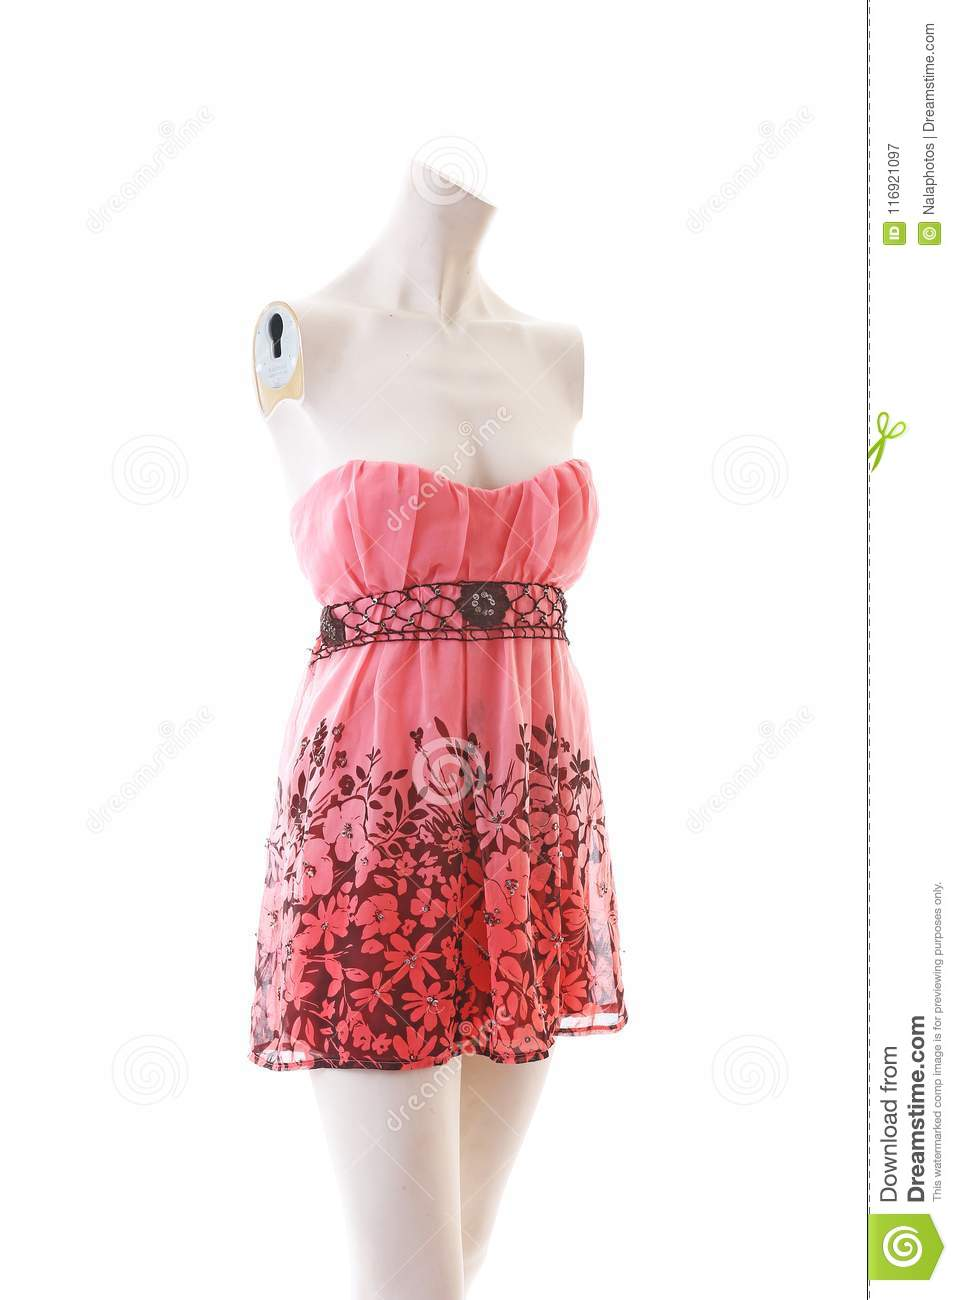 0b0ad9c7ce Pink dress long top mini dress on mannequin full body shop display. Woman  fashion styles, clothes on white studio background.